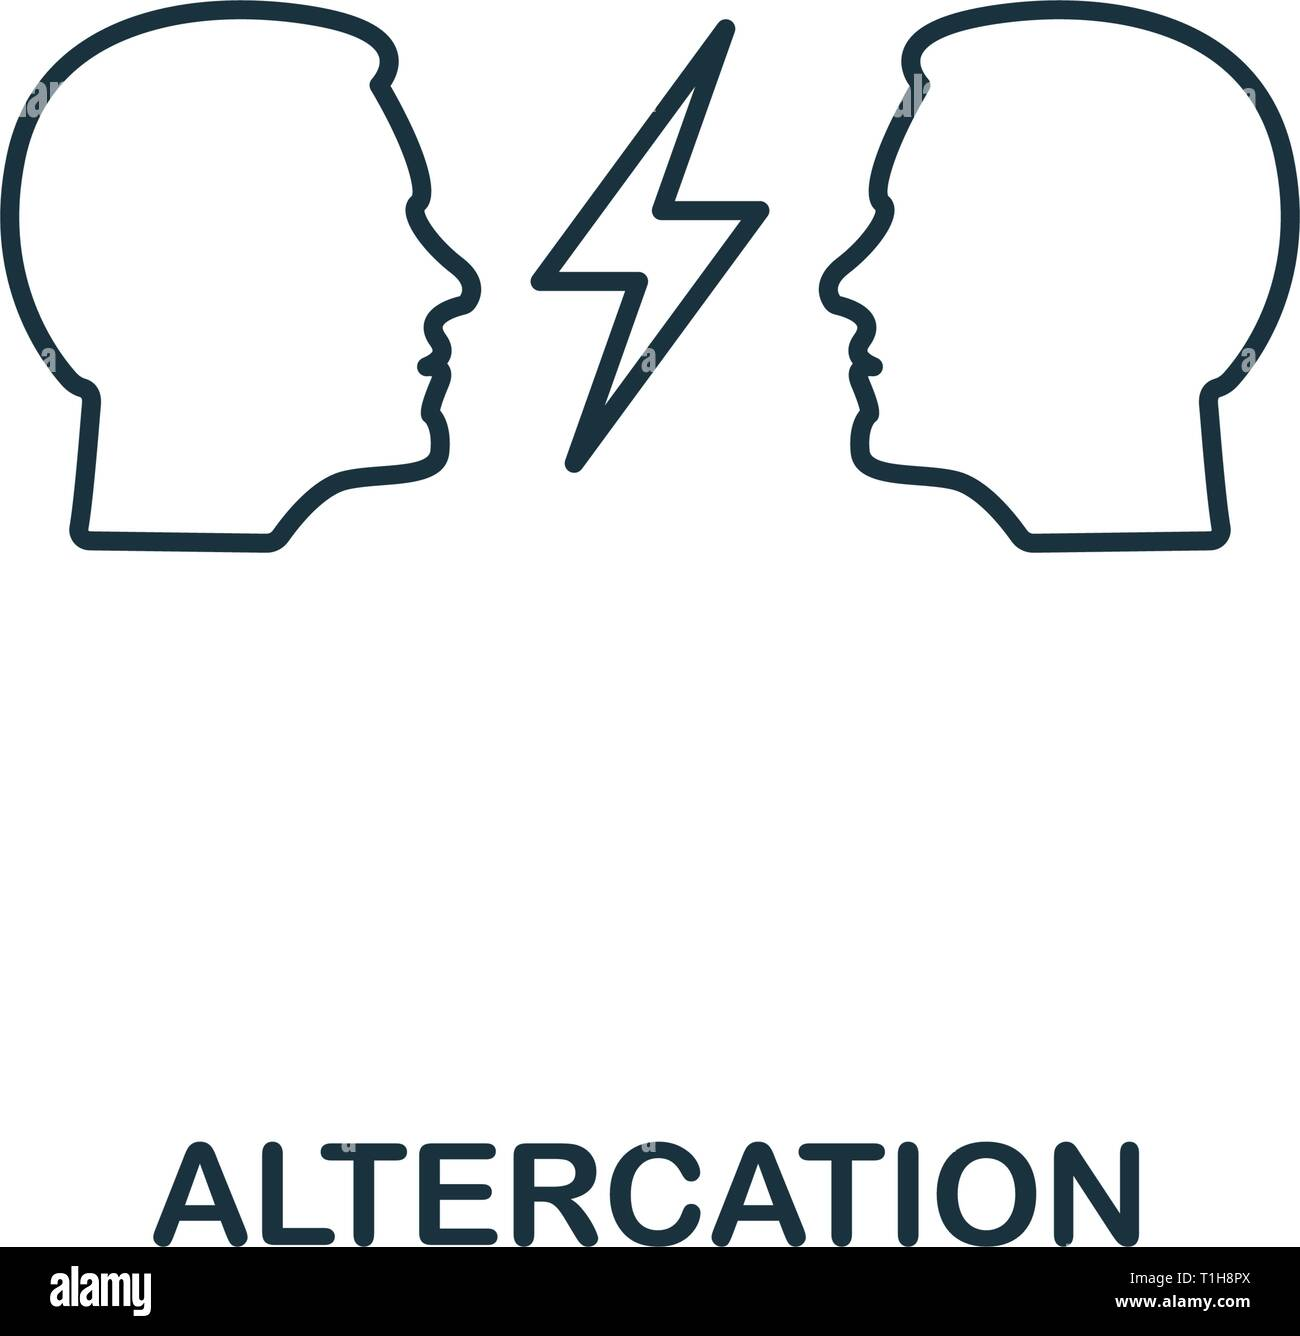 Altercation icon. Thin line design symbol from business ethics icons collection. Pixel perfect altercation icon for web design, apps, software, print  - Stock Vector